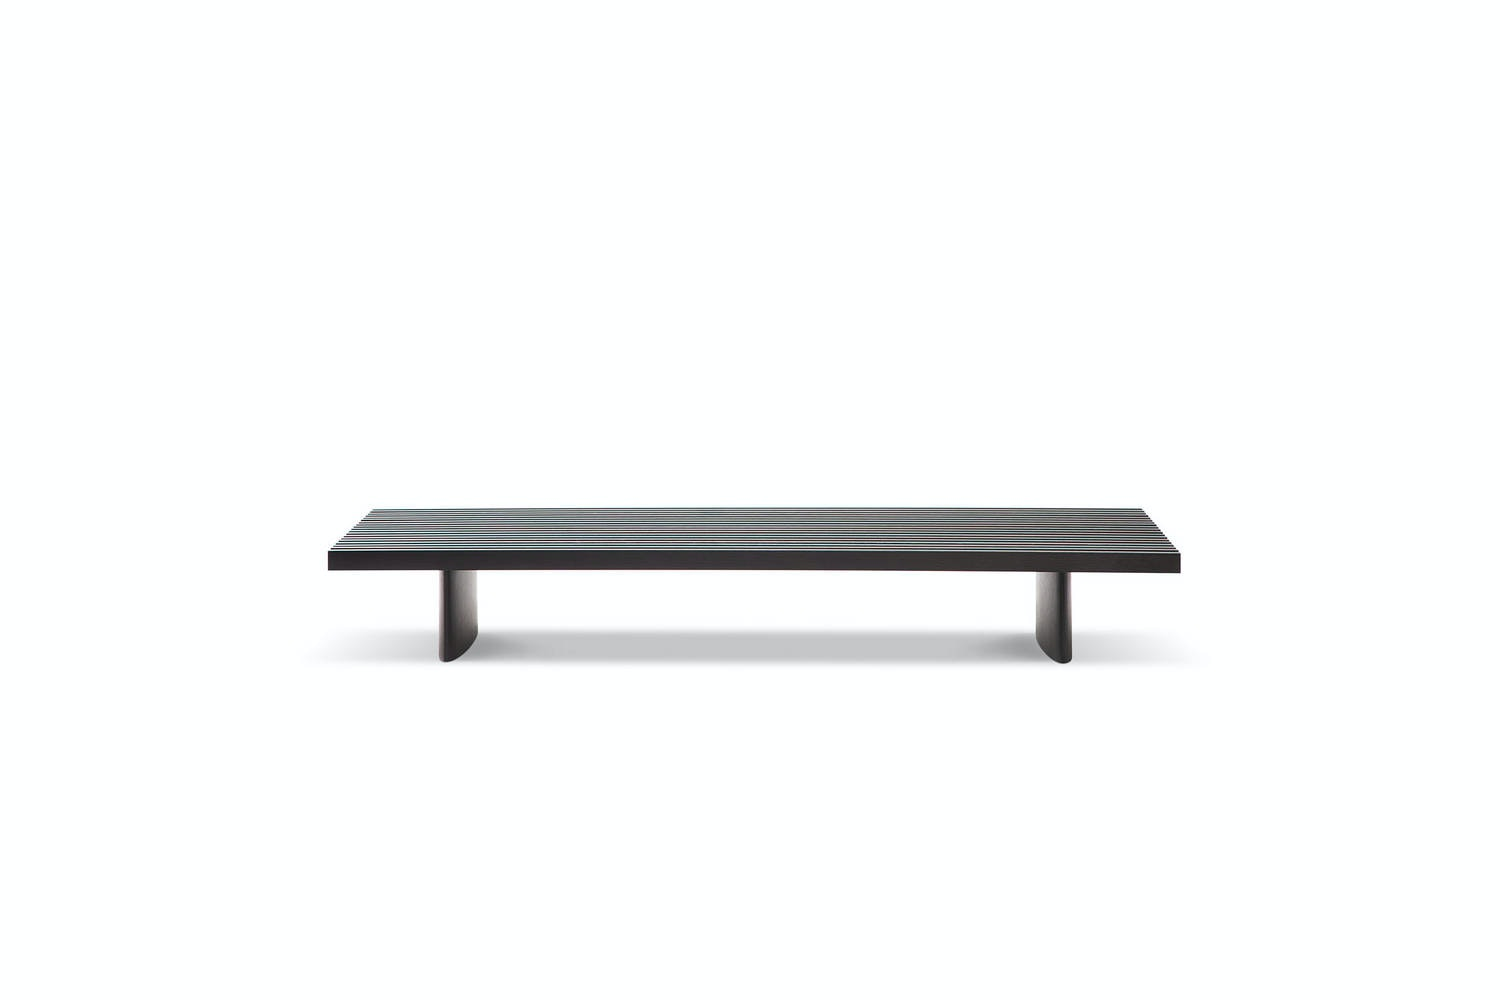 514 Refolo Coffee Table by Charlotte Perriand for Cassina